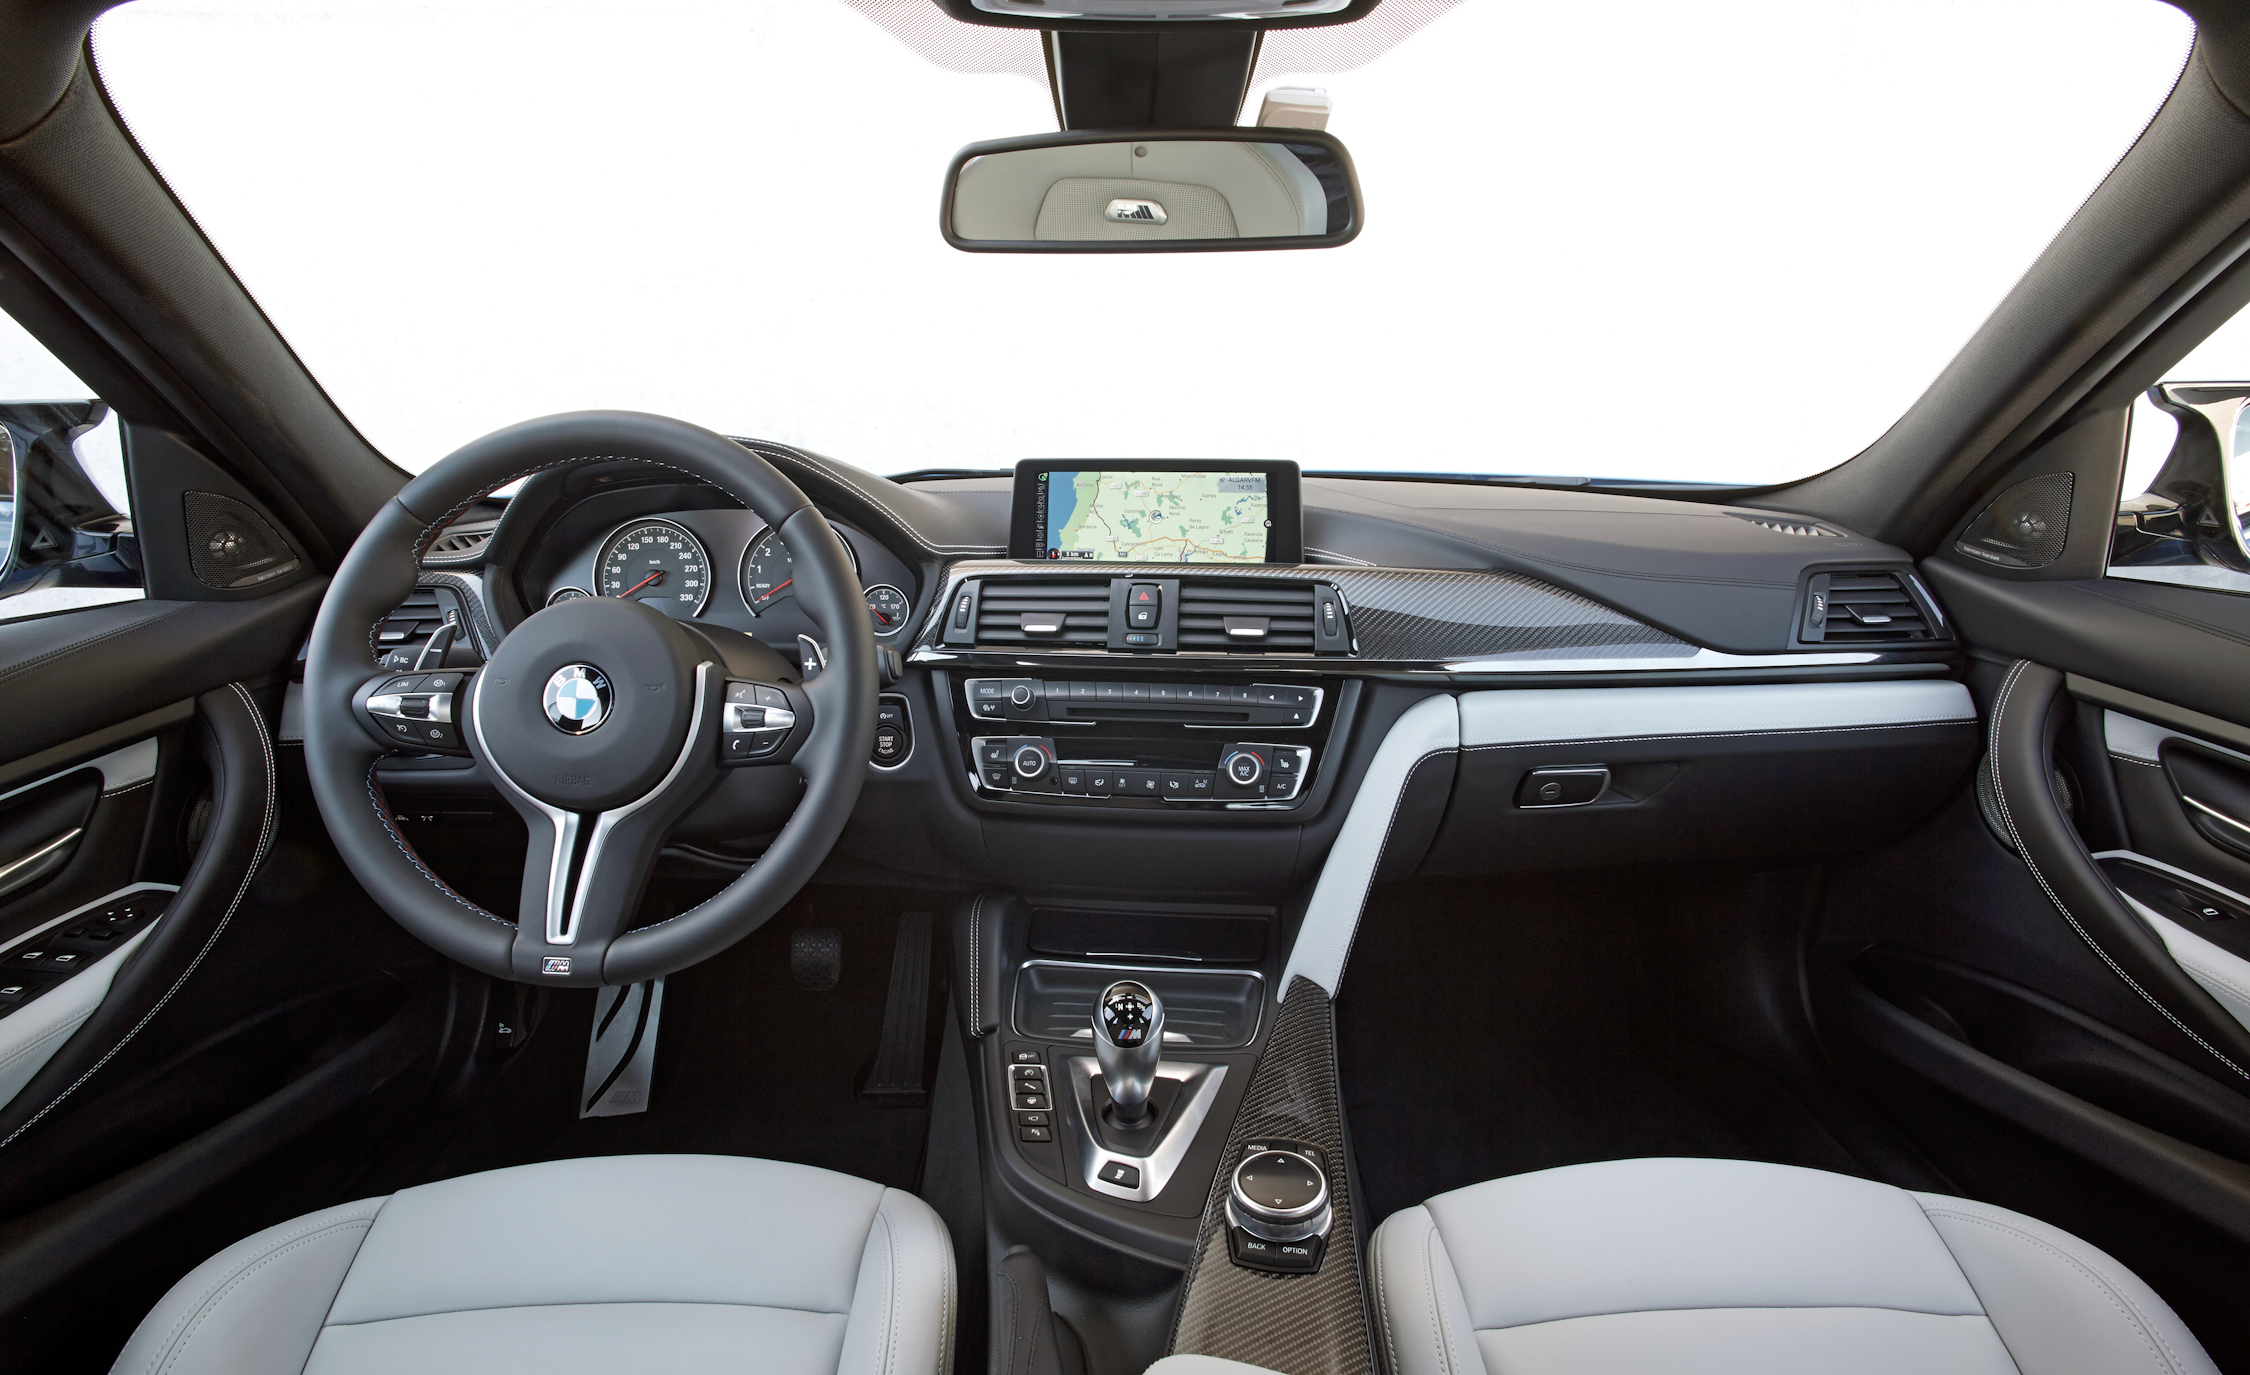 2015 BMW M3 Sedan Interior (Photo 30 of 55)